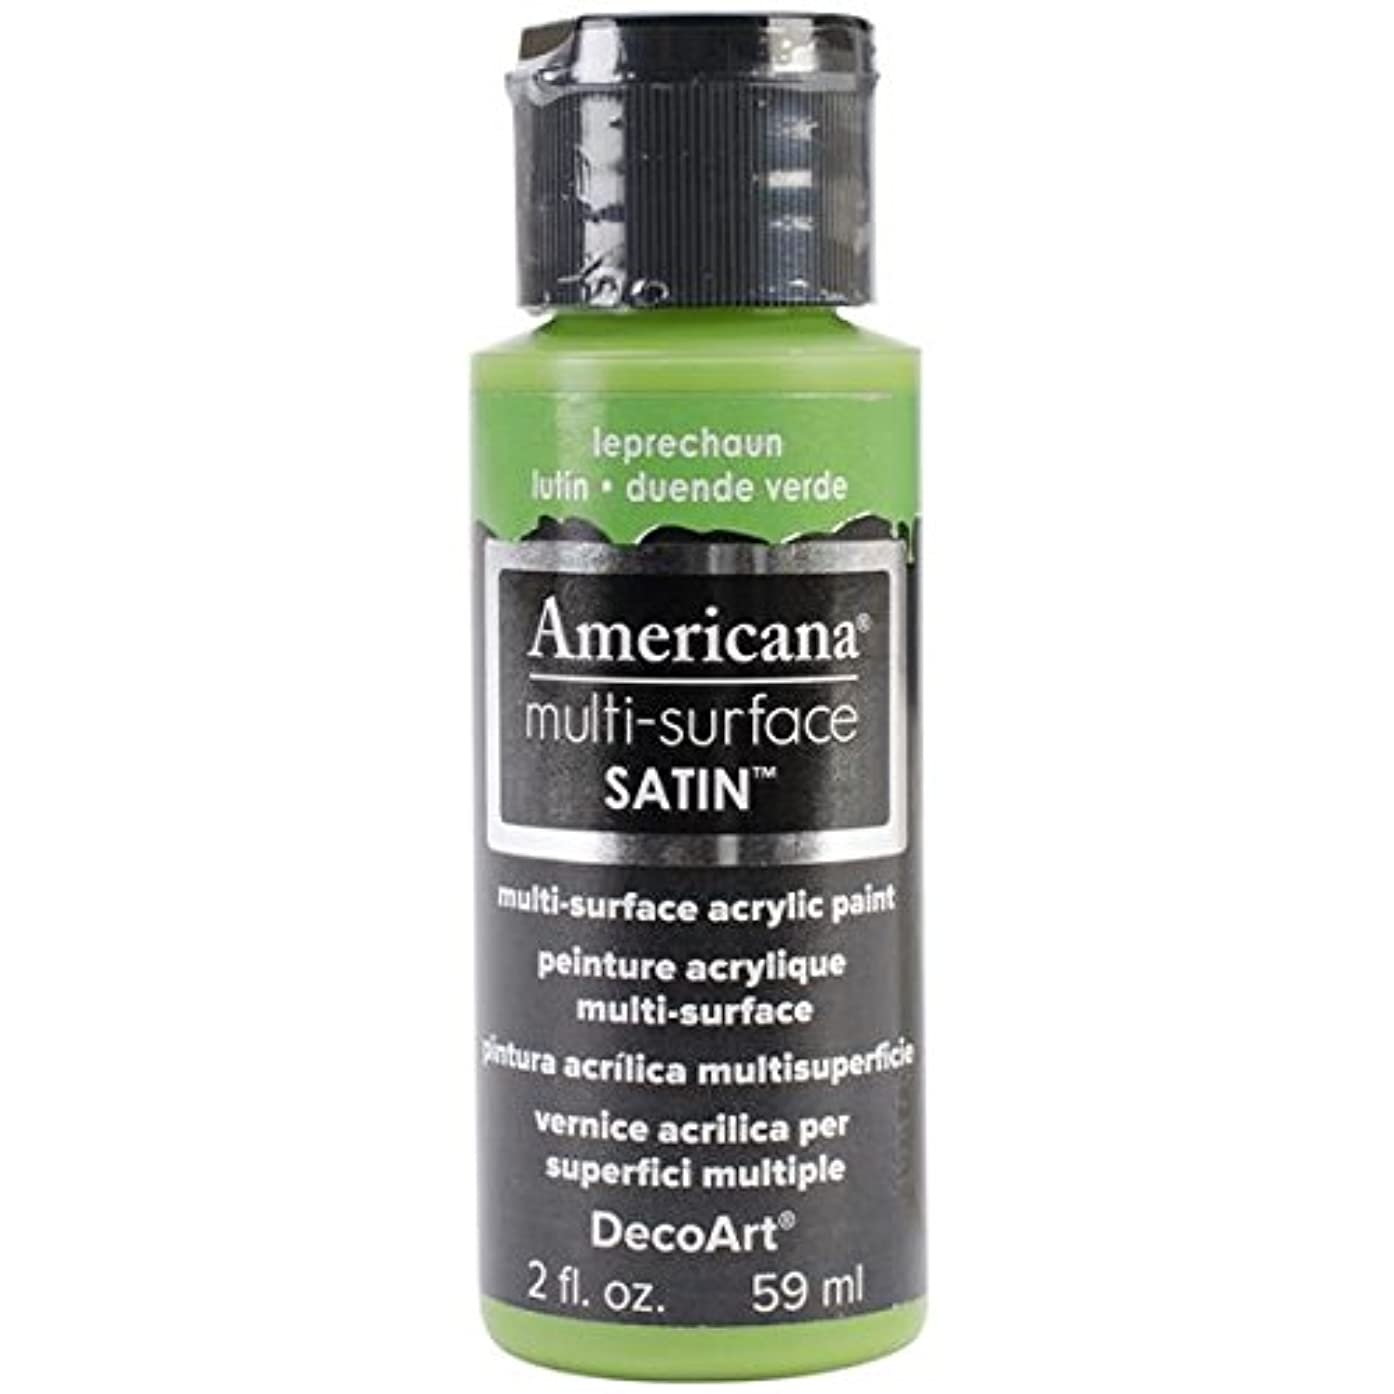 DecoArt Americana Multi-Surface Satin Acrylic Paint, 2-Ounce, Leprechaun